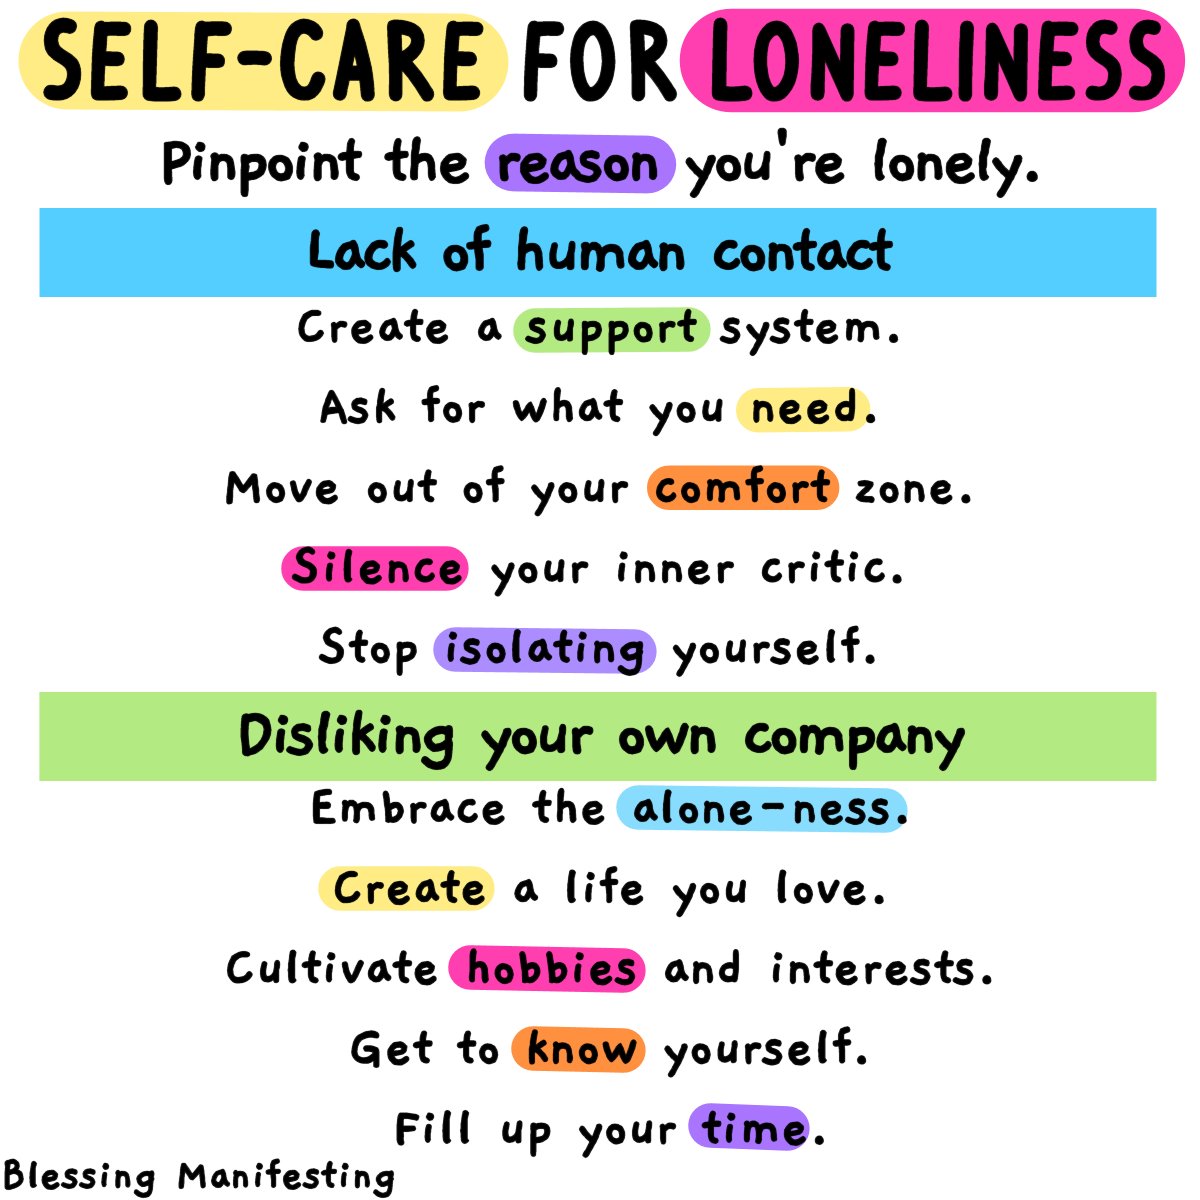 Self-Care for Loneliness graphic